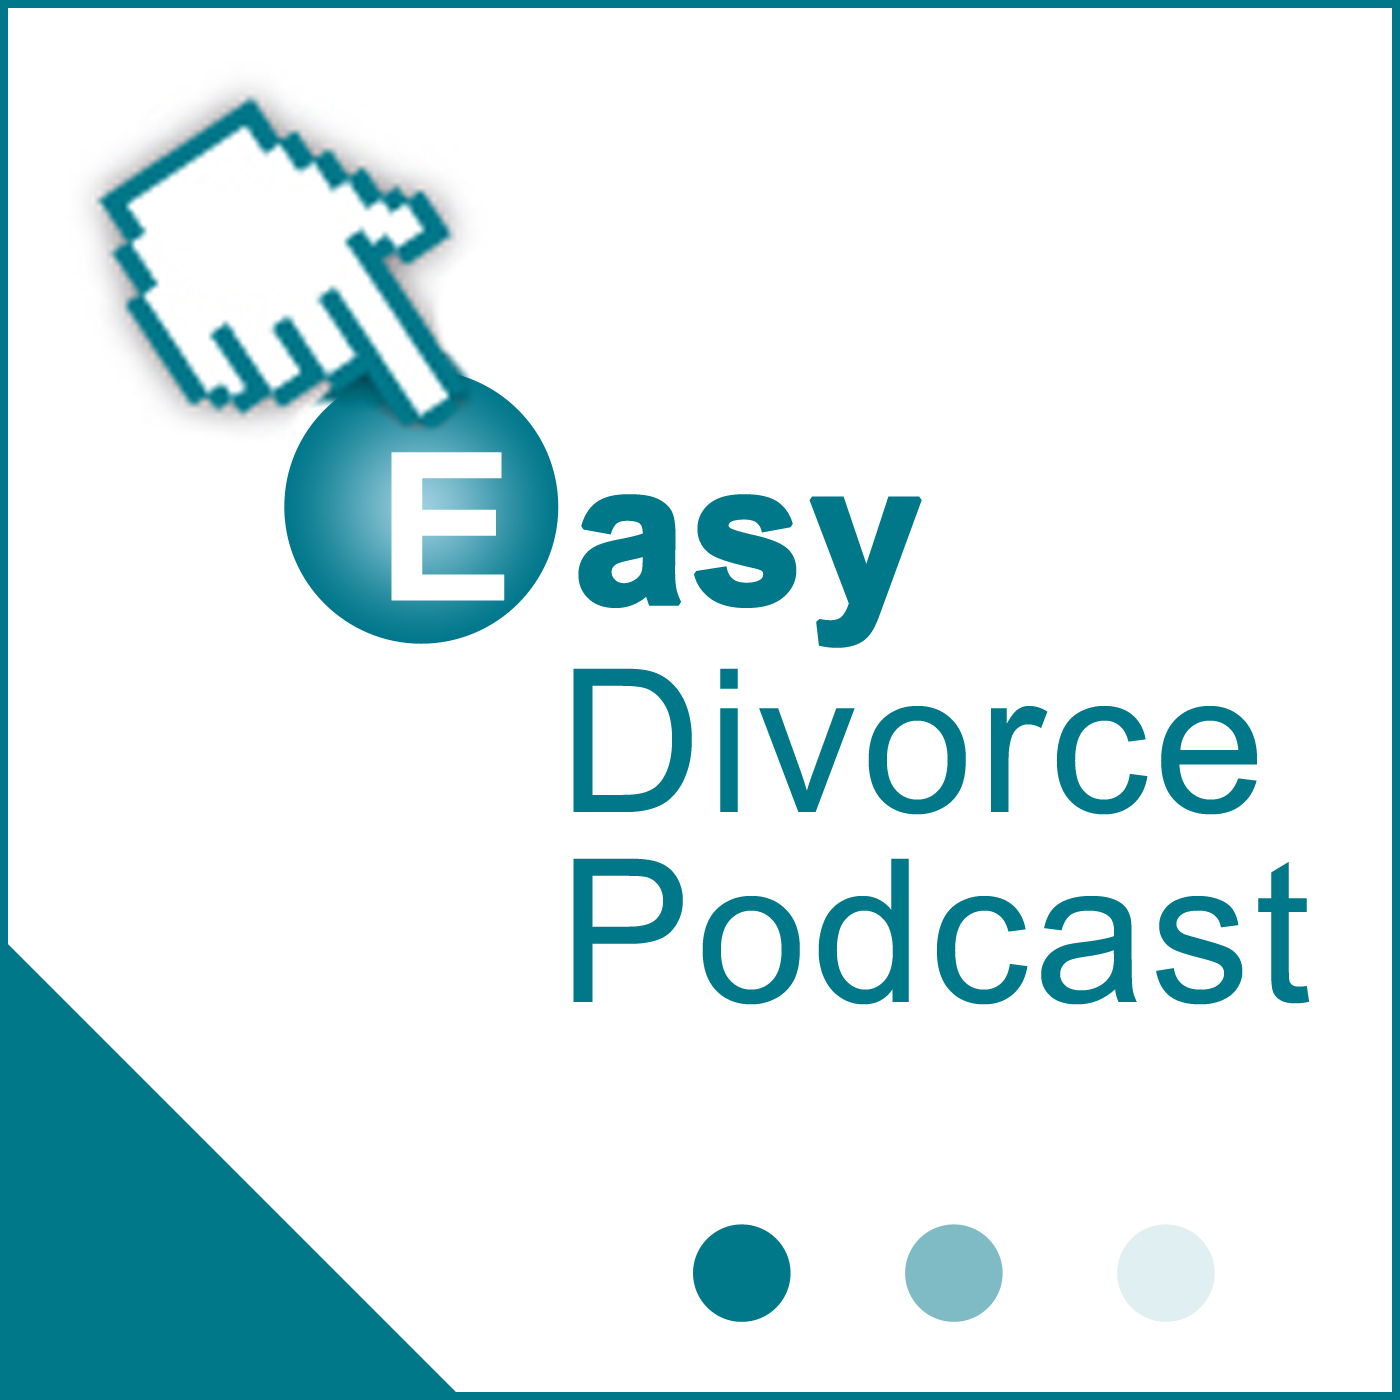 Easy Divorce Podcast